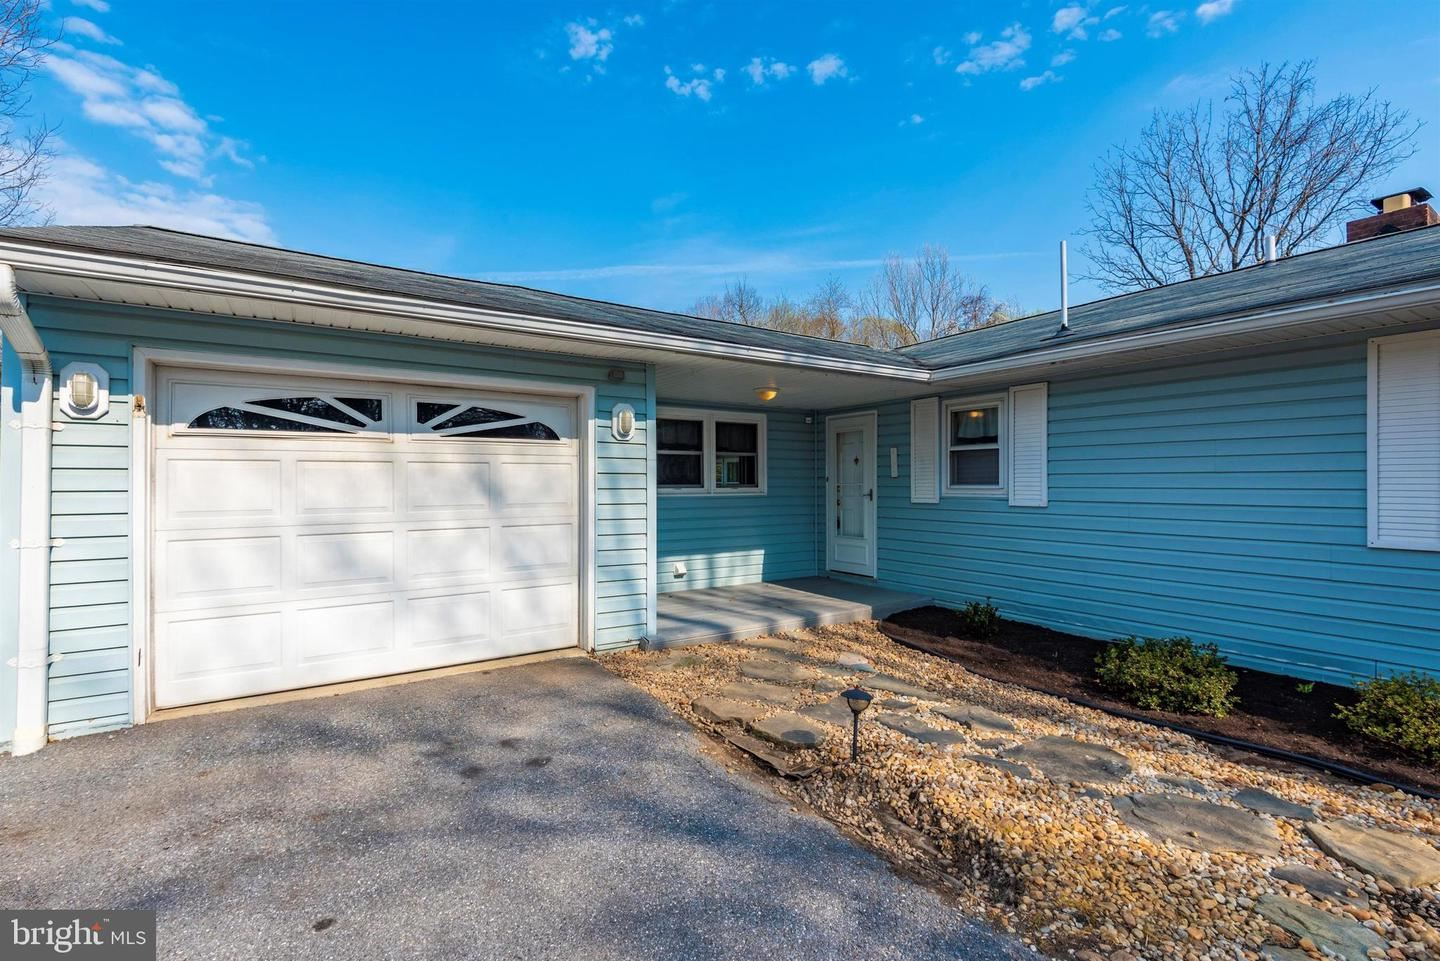 Photo of 2532 POINT OF ROCKS ROAD, KNOXVILLE, MD 21758 (MLS # MDFR279854)